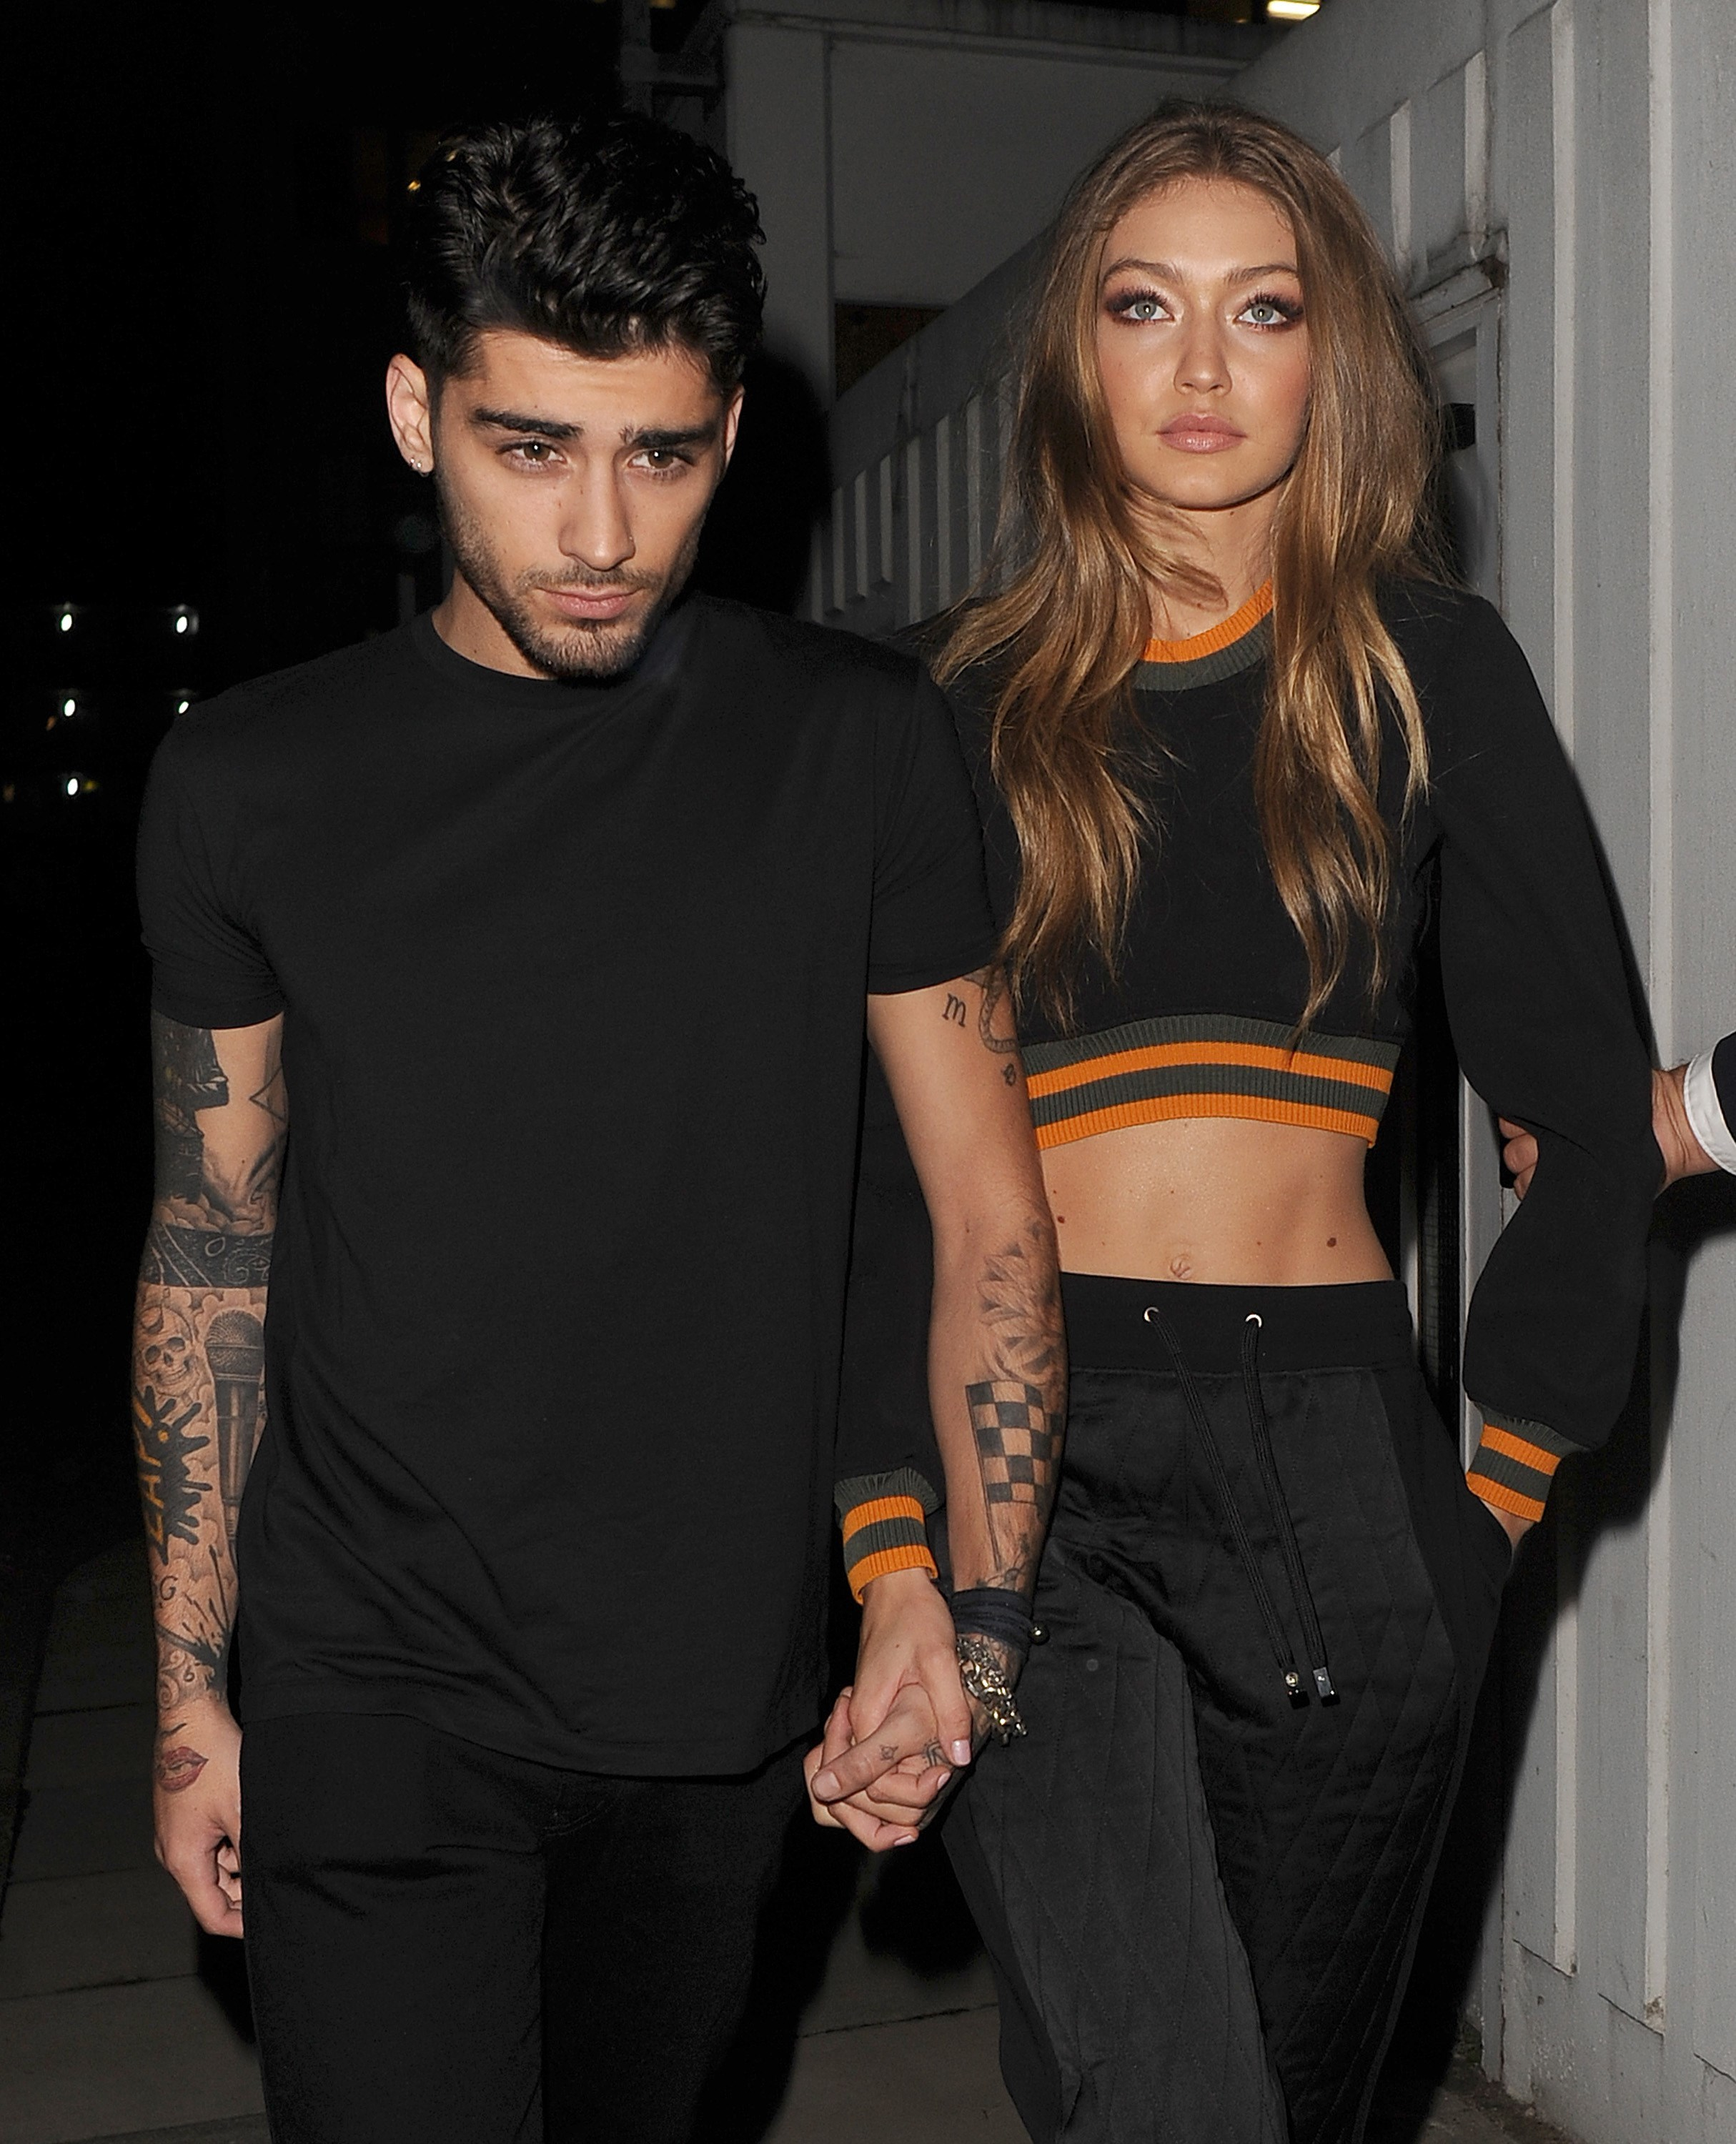 Gigi Hadid likes Zayn Malik's solo work better than his recordings with 1D